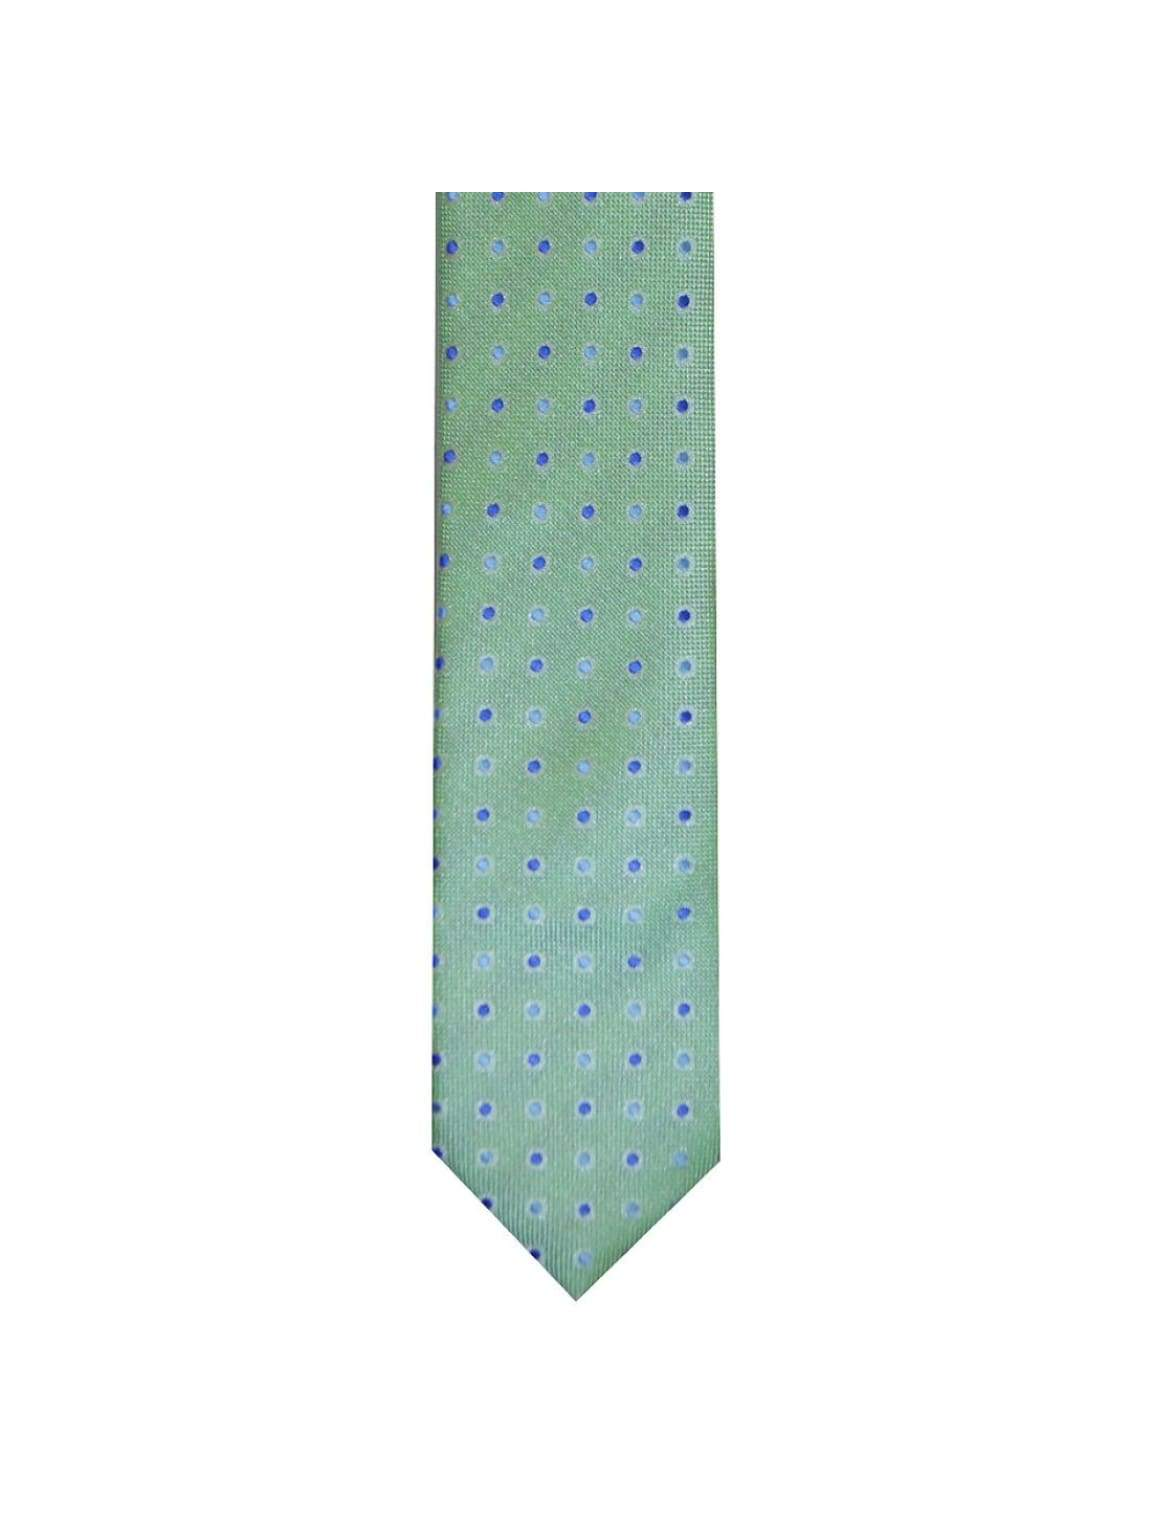 LA Smith Green Skinny Polka Dot Tie - Accessories